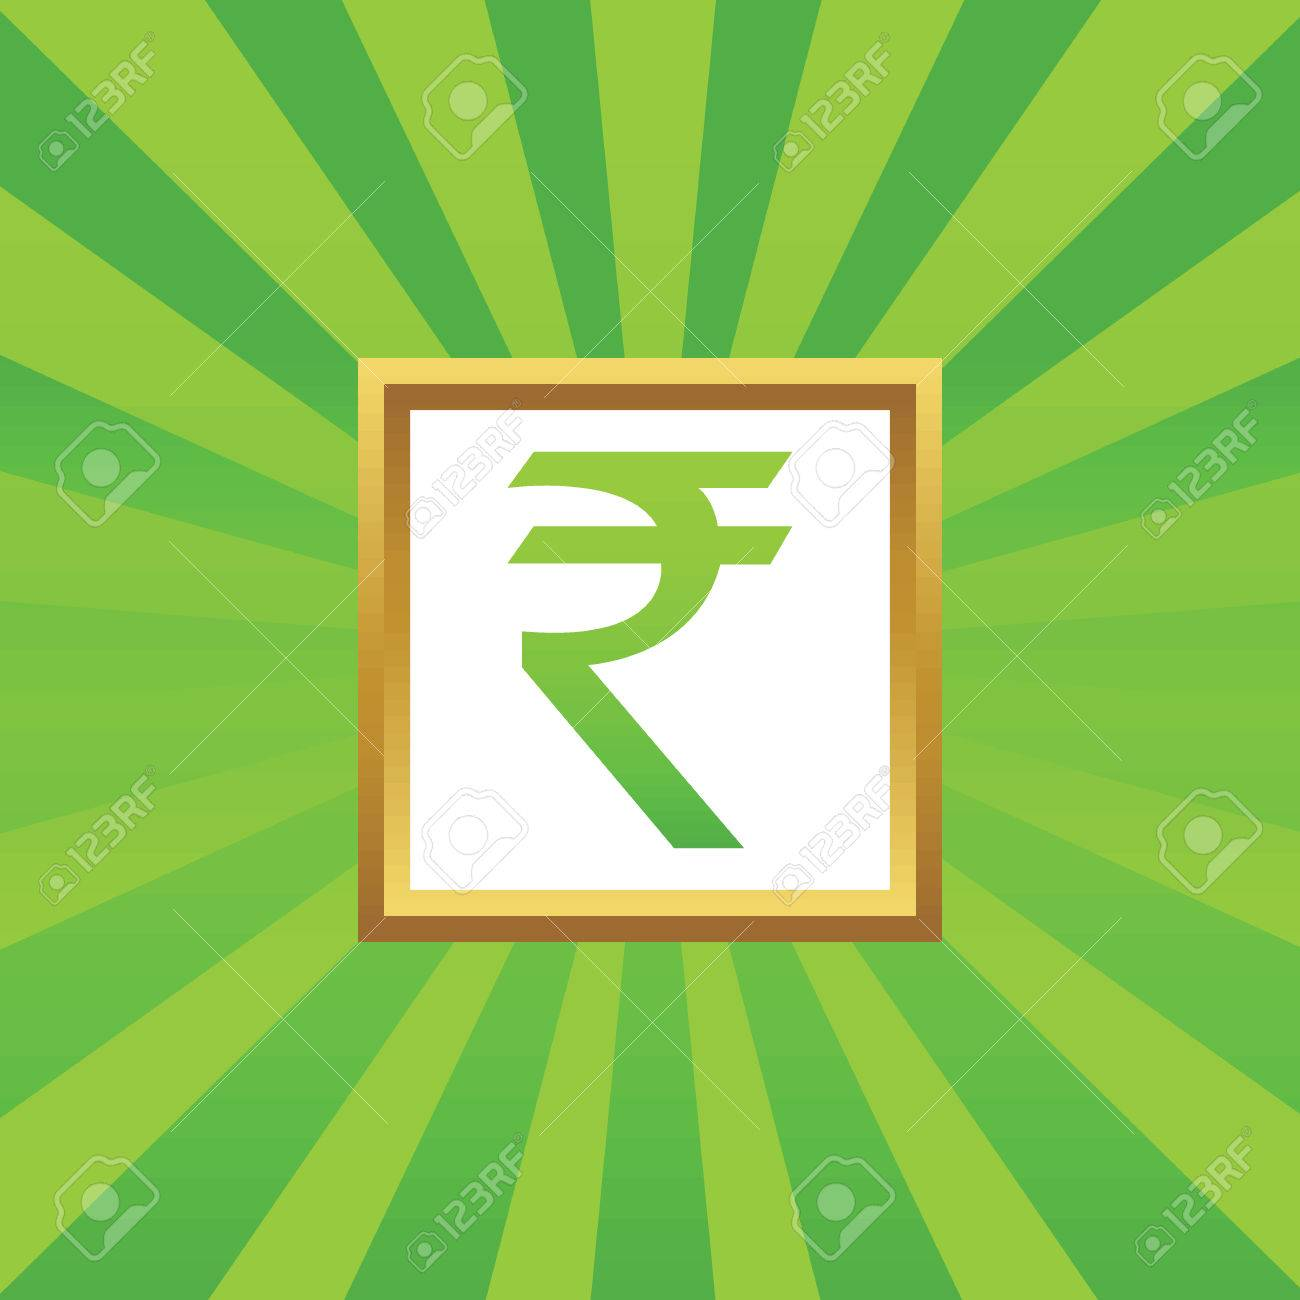 Image of indian rupee symbol in golden frame on green abstract image of indian rupee symbol in golden frame on green abstract background stock vector biocorpaavc Choice Image